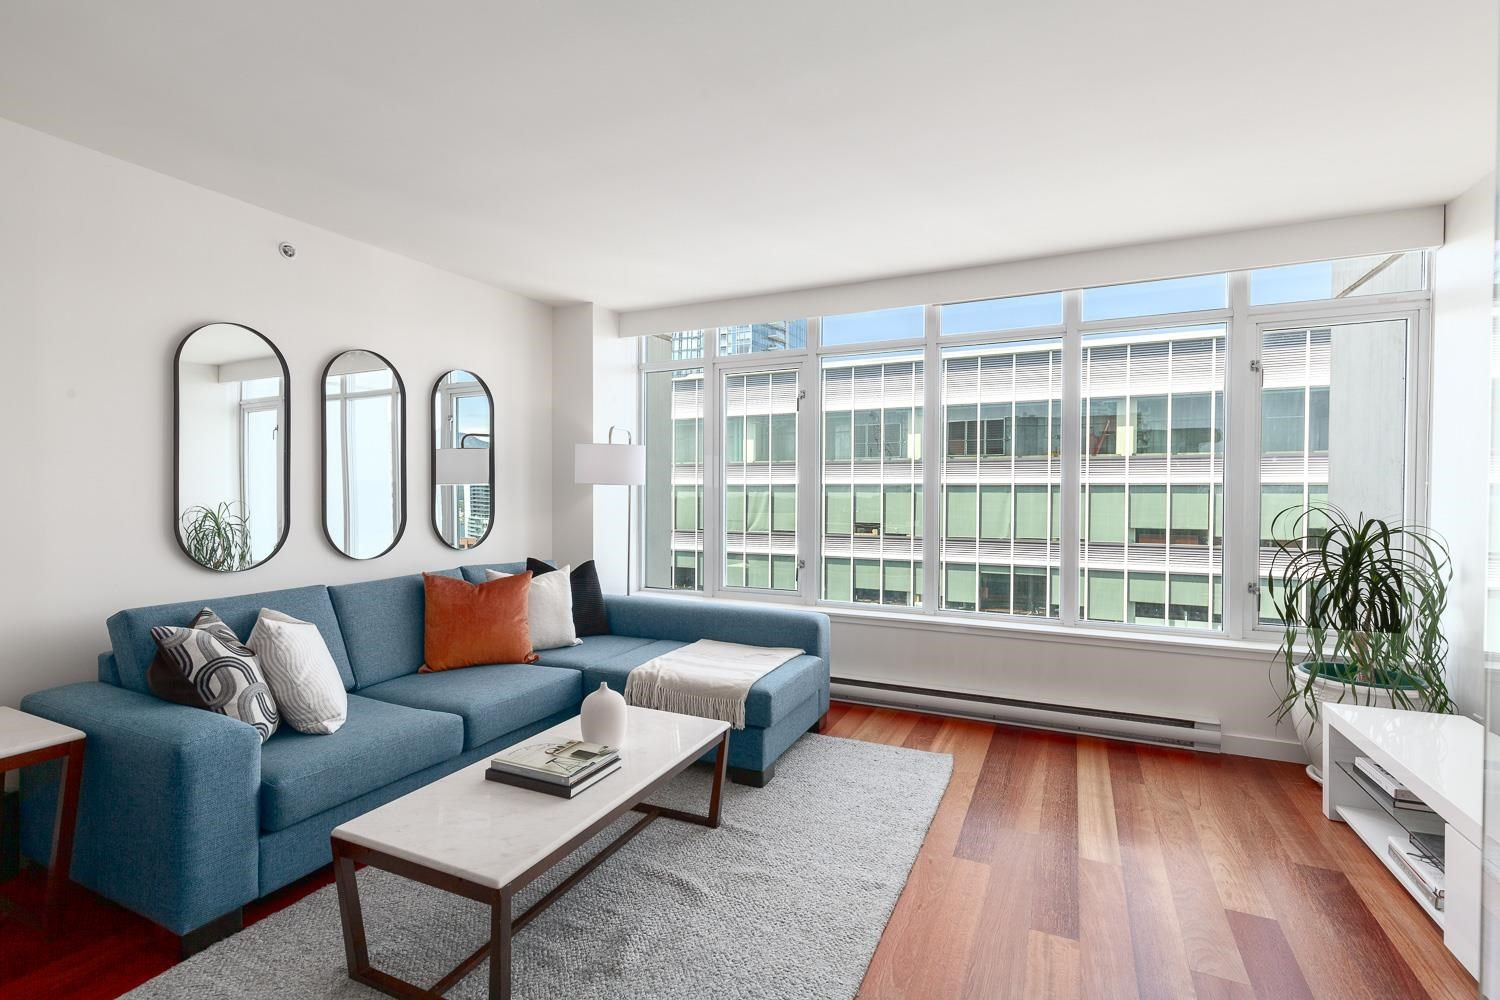 Main Photo: PH3202 610 GRANVILLE STREET in Vancouver: Downtown VW Condo for sale (Vancouver West)  : MLS®# R2604994